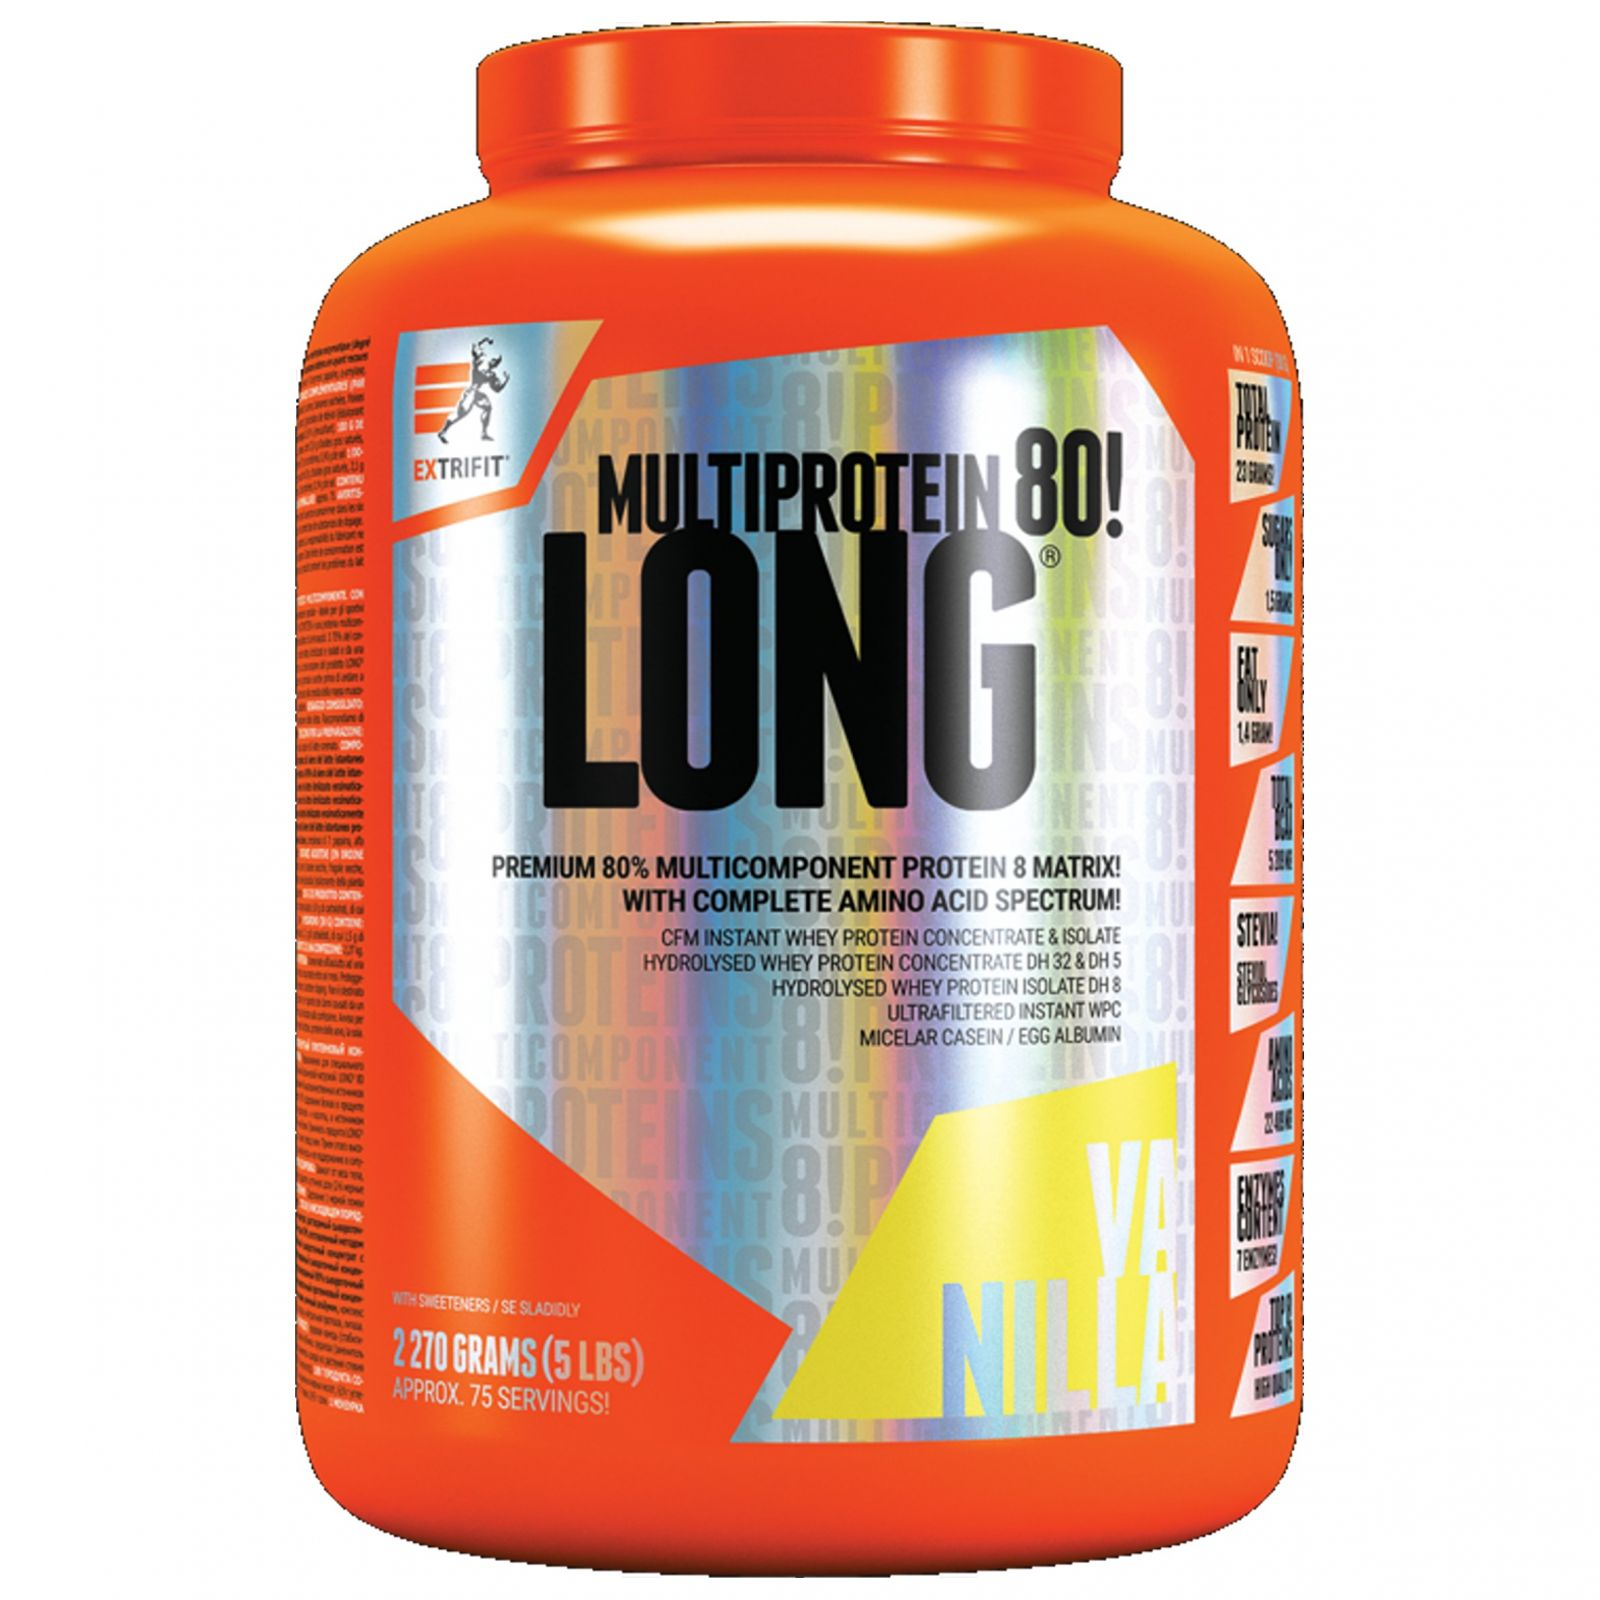 Extrifit Long 80 Multiprotein 2270 g